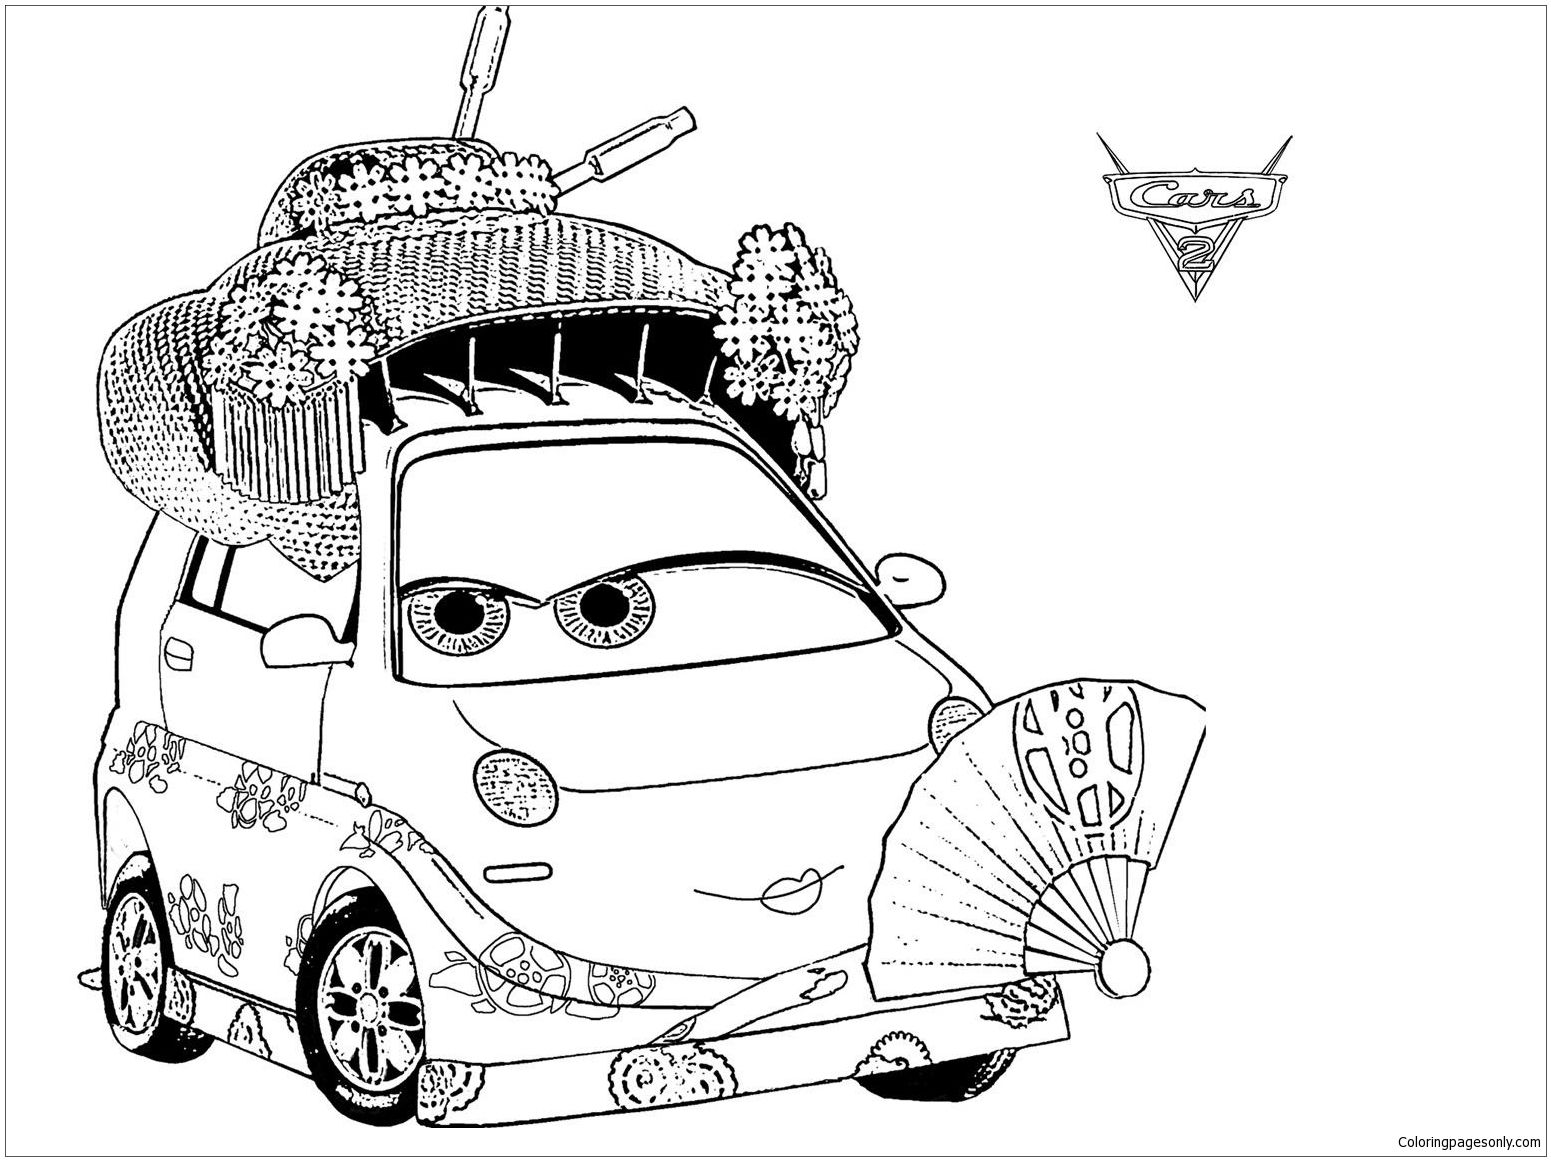 Disney Okuni For Kids Cars 204f1 Coloring Page: http ...